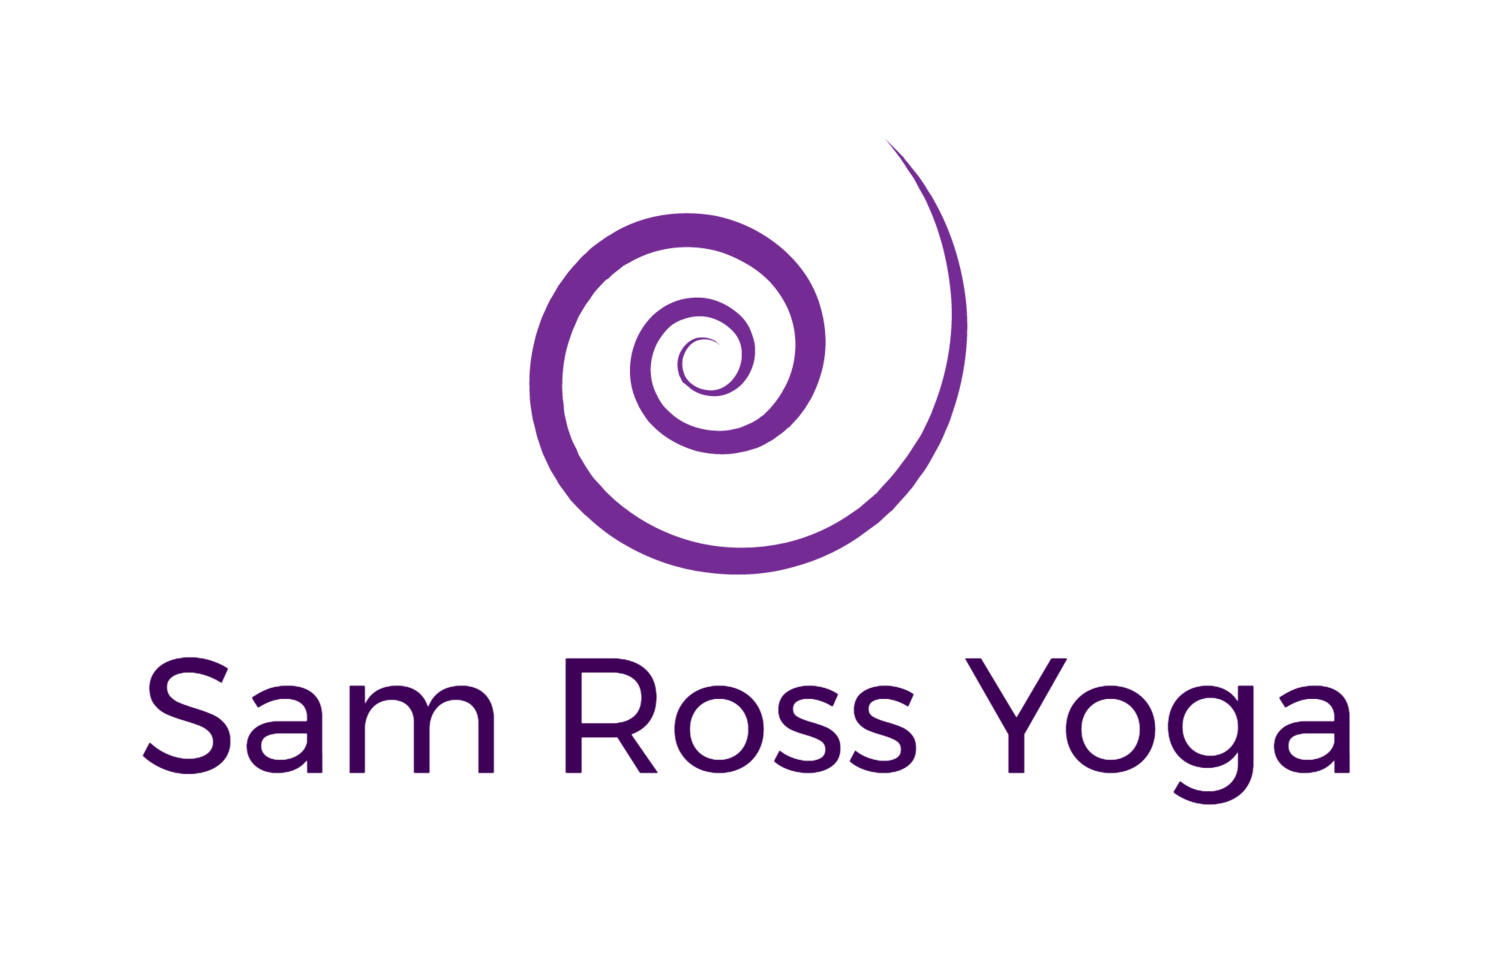 Sam Ross Yoga